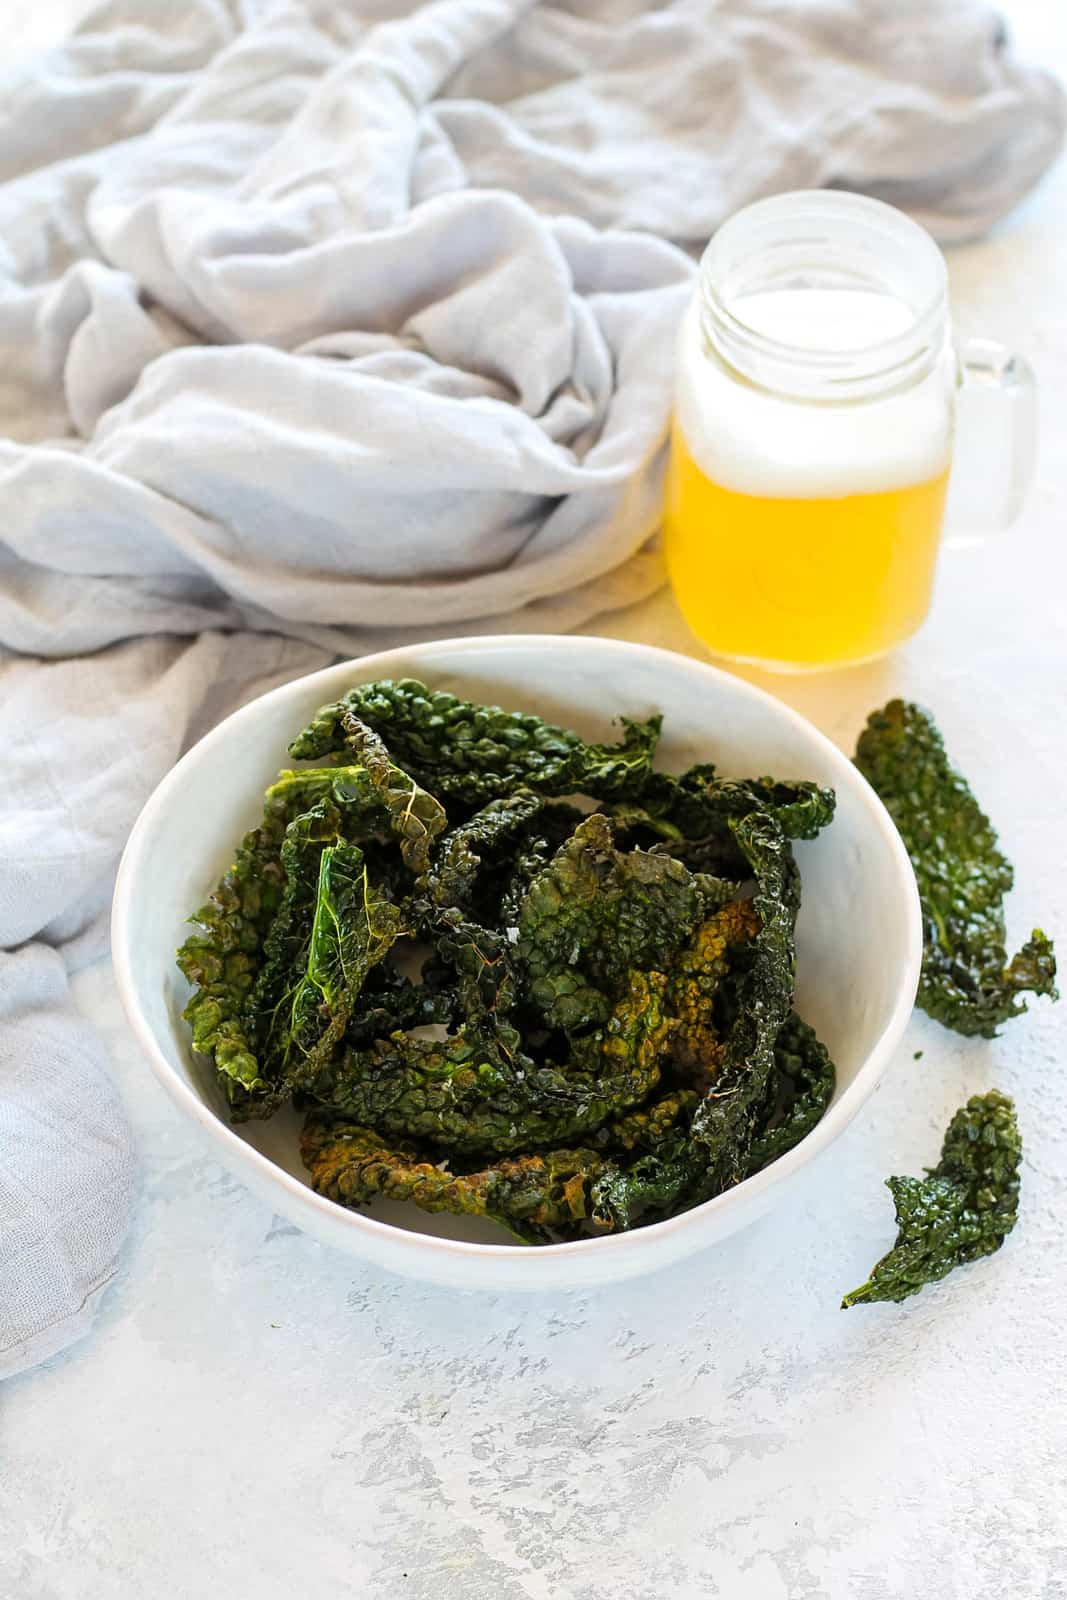 air fryer kale chips in a white bowl with a mug of beer in the background